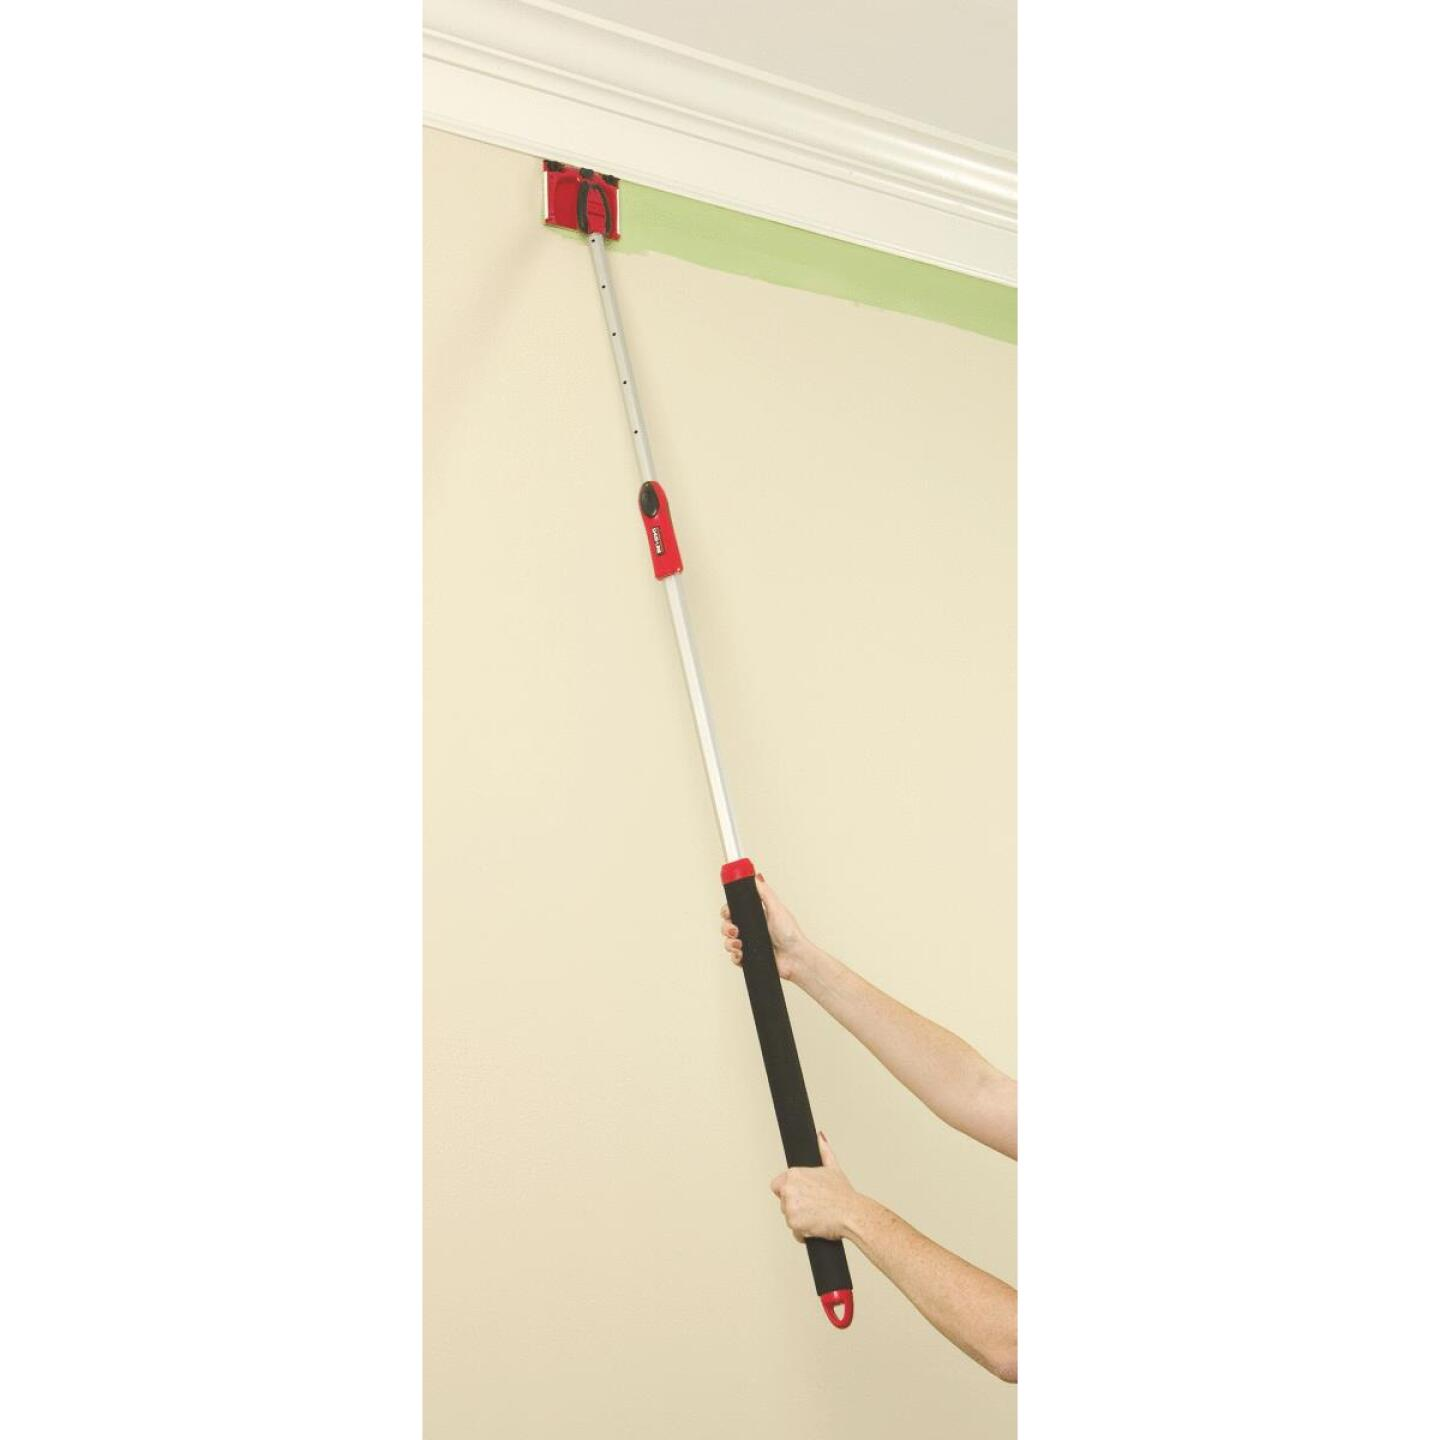 Shur-Line 18 In. to 36 In. Metal, Foam (Handle) Extension Pole Image 5